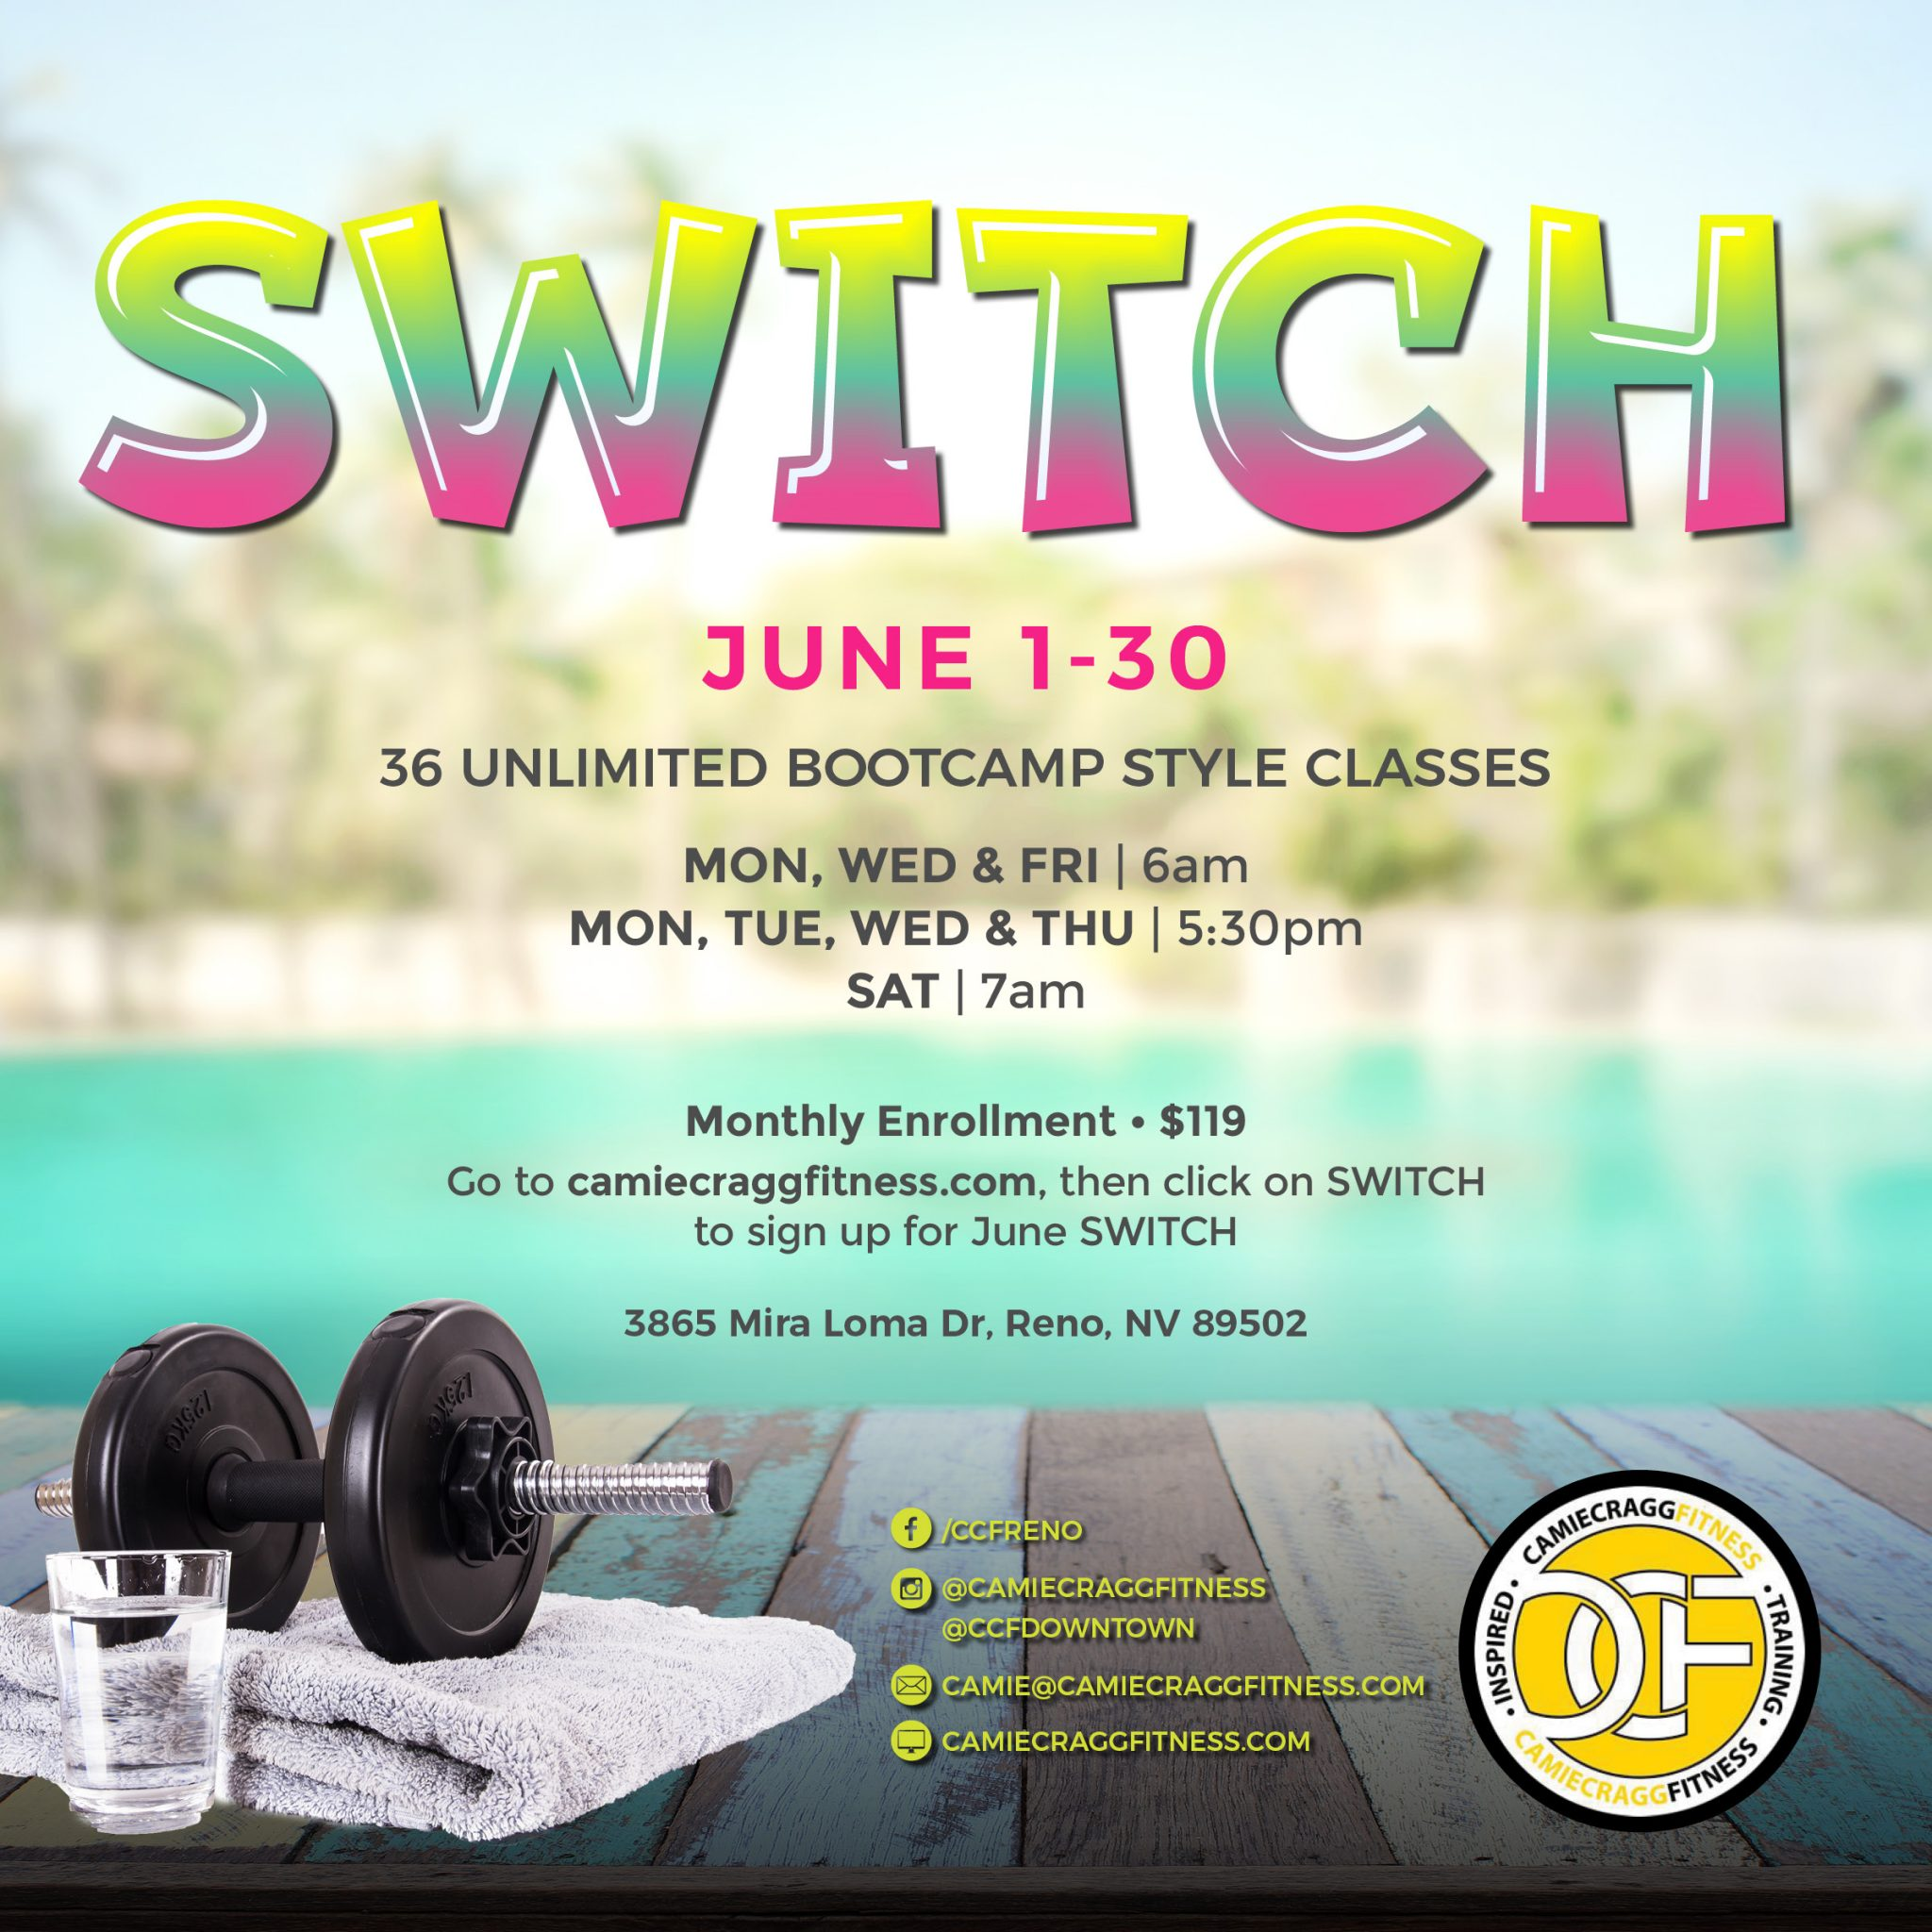 June S.W.I.T.C.H. Feauted